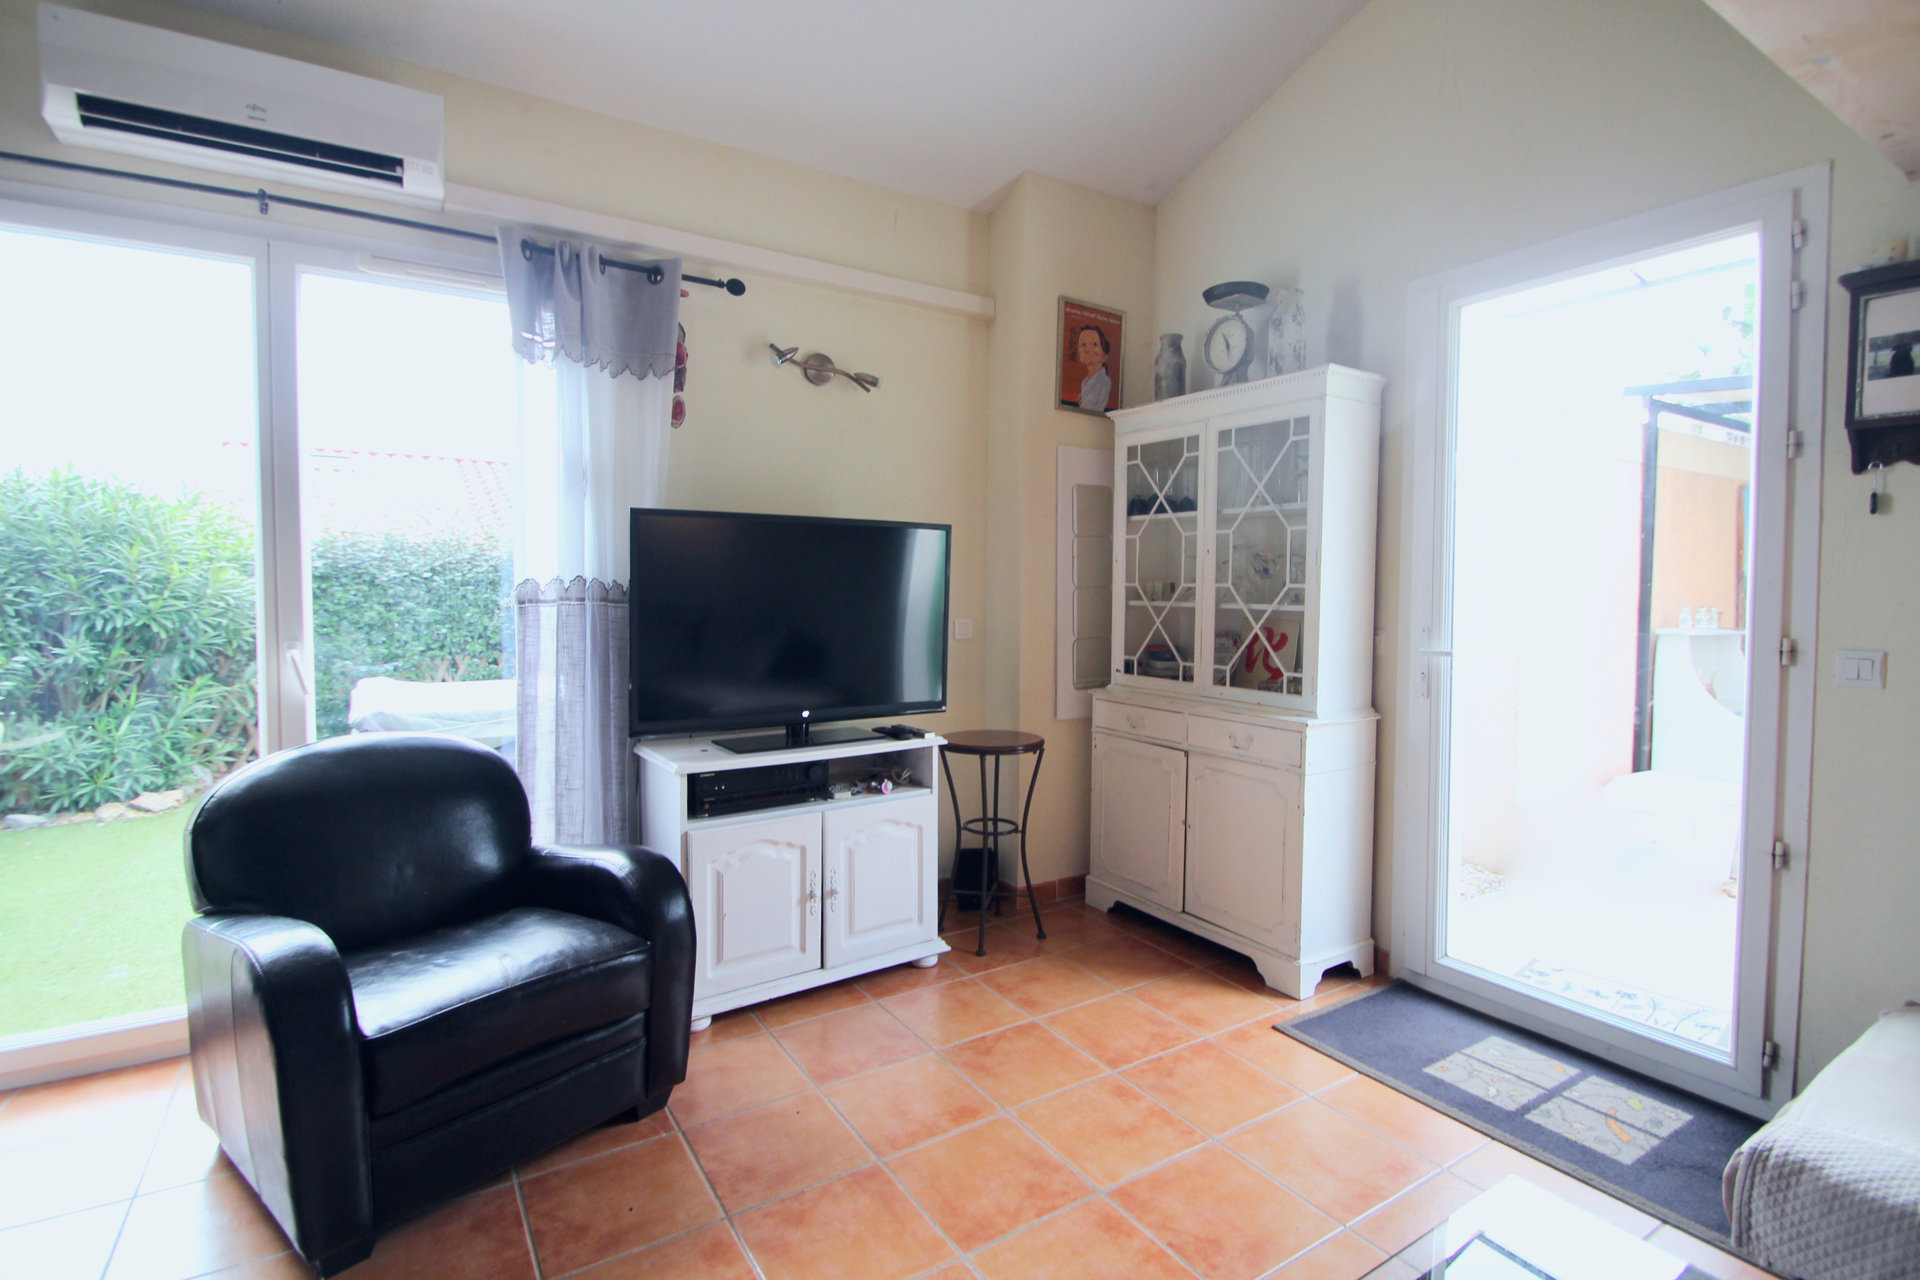 Golf-Course of Roquebrune-sur-Argens | 2/3 bedroom house with garage